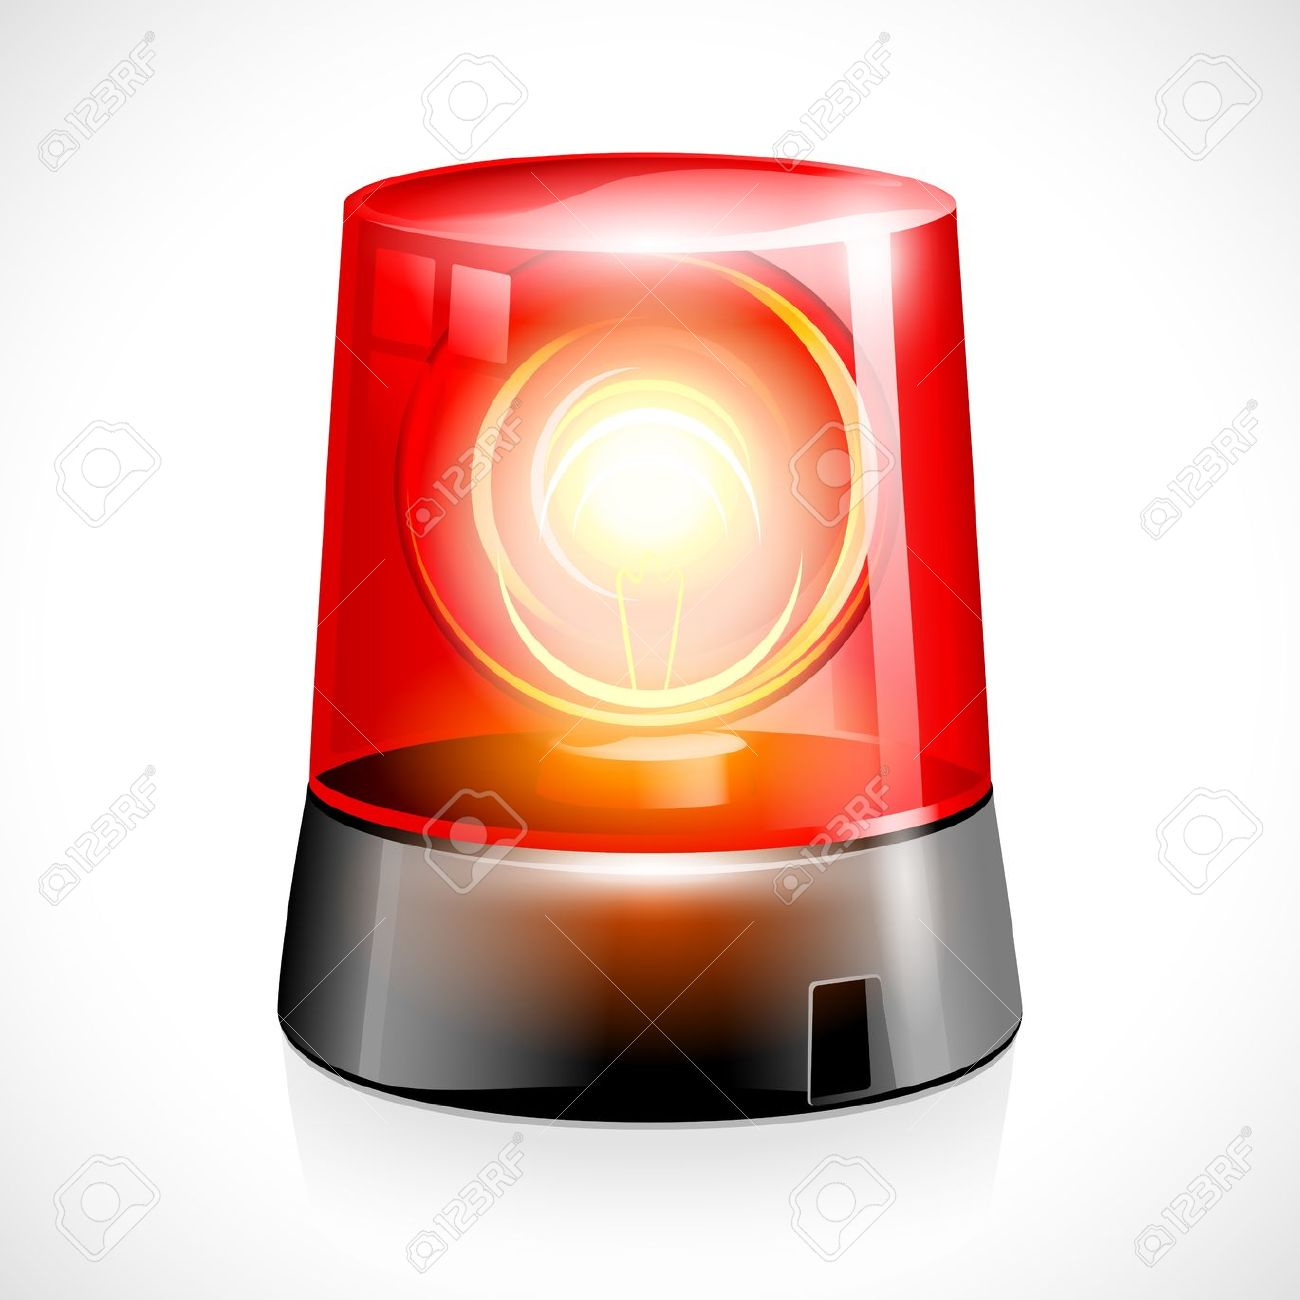 Warning lamp clipart - Clipground for Warning Light Clipart  76uhy